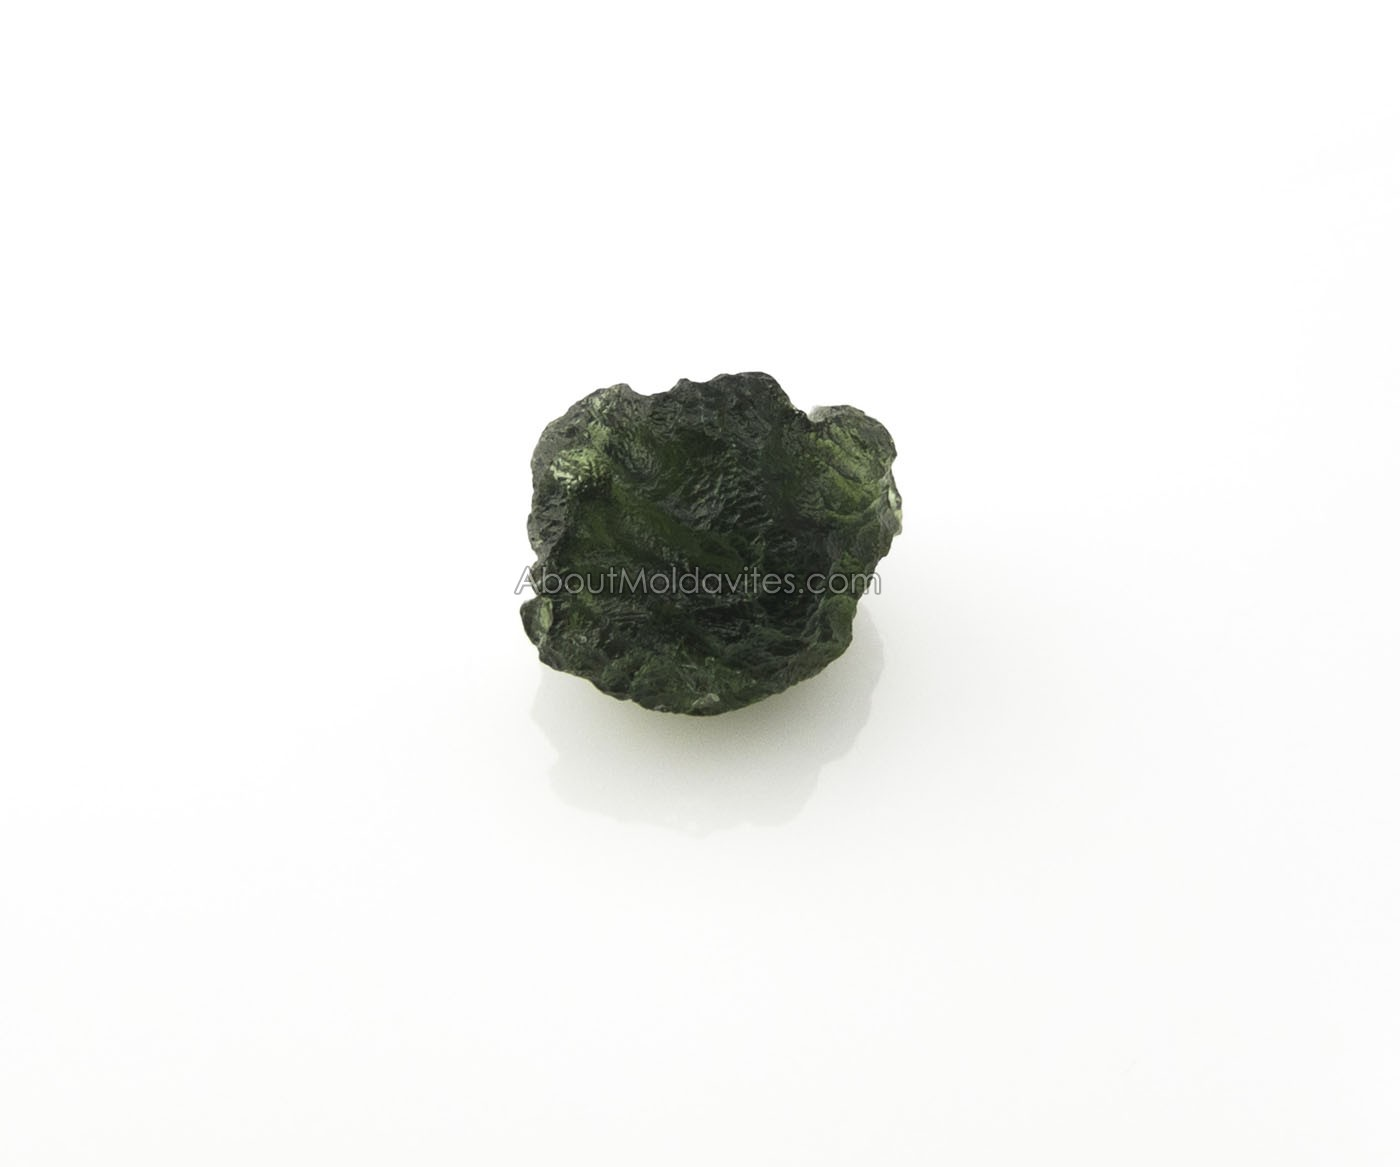 Small ball - moldavite